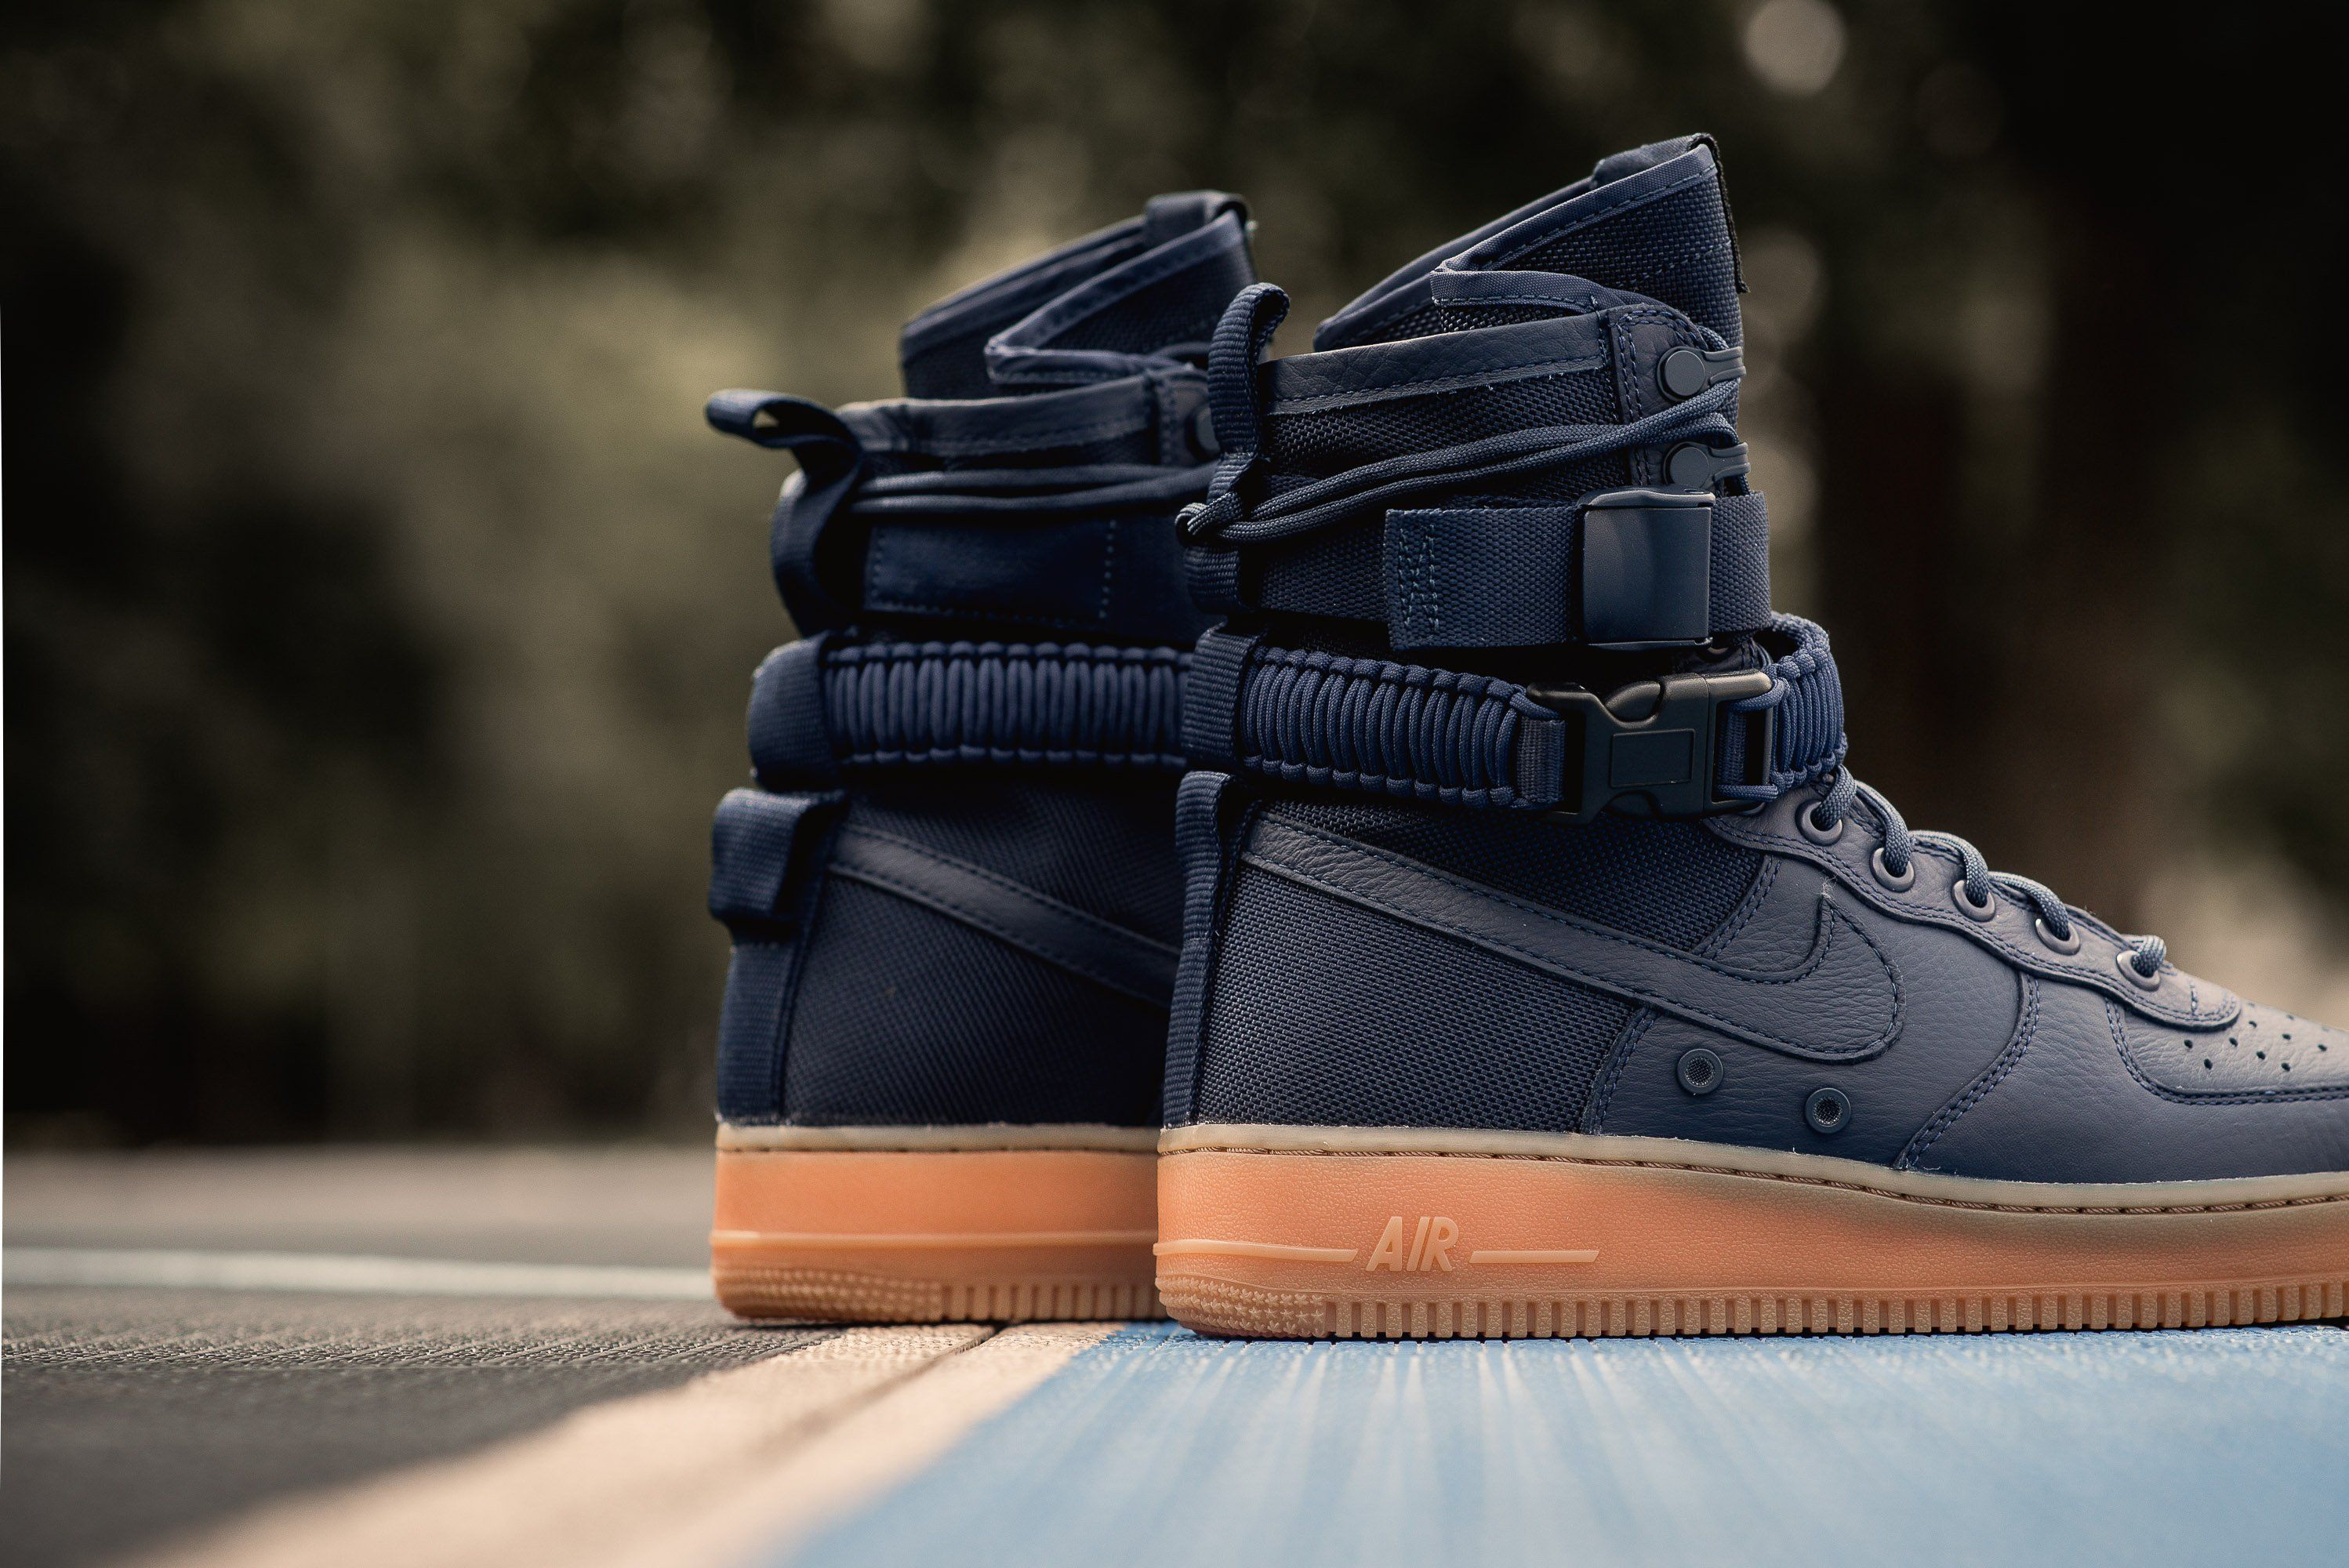 The Nike Special Field Air Force 1 Midnight Navy Can Be